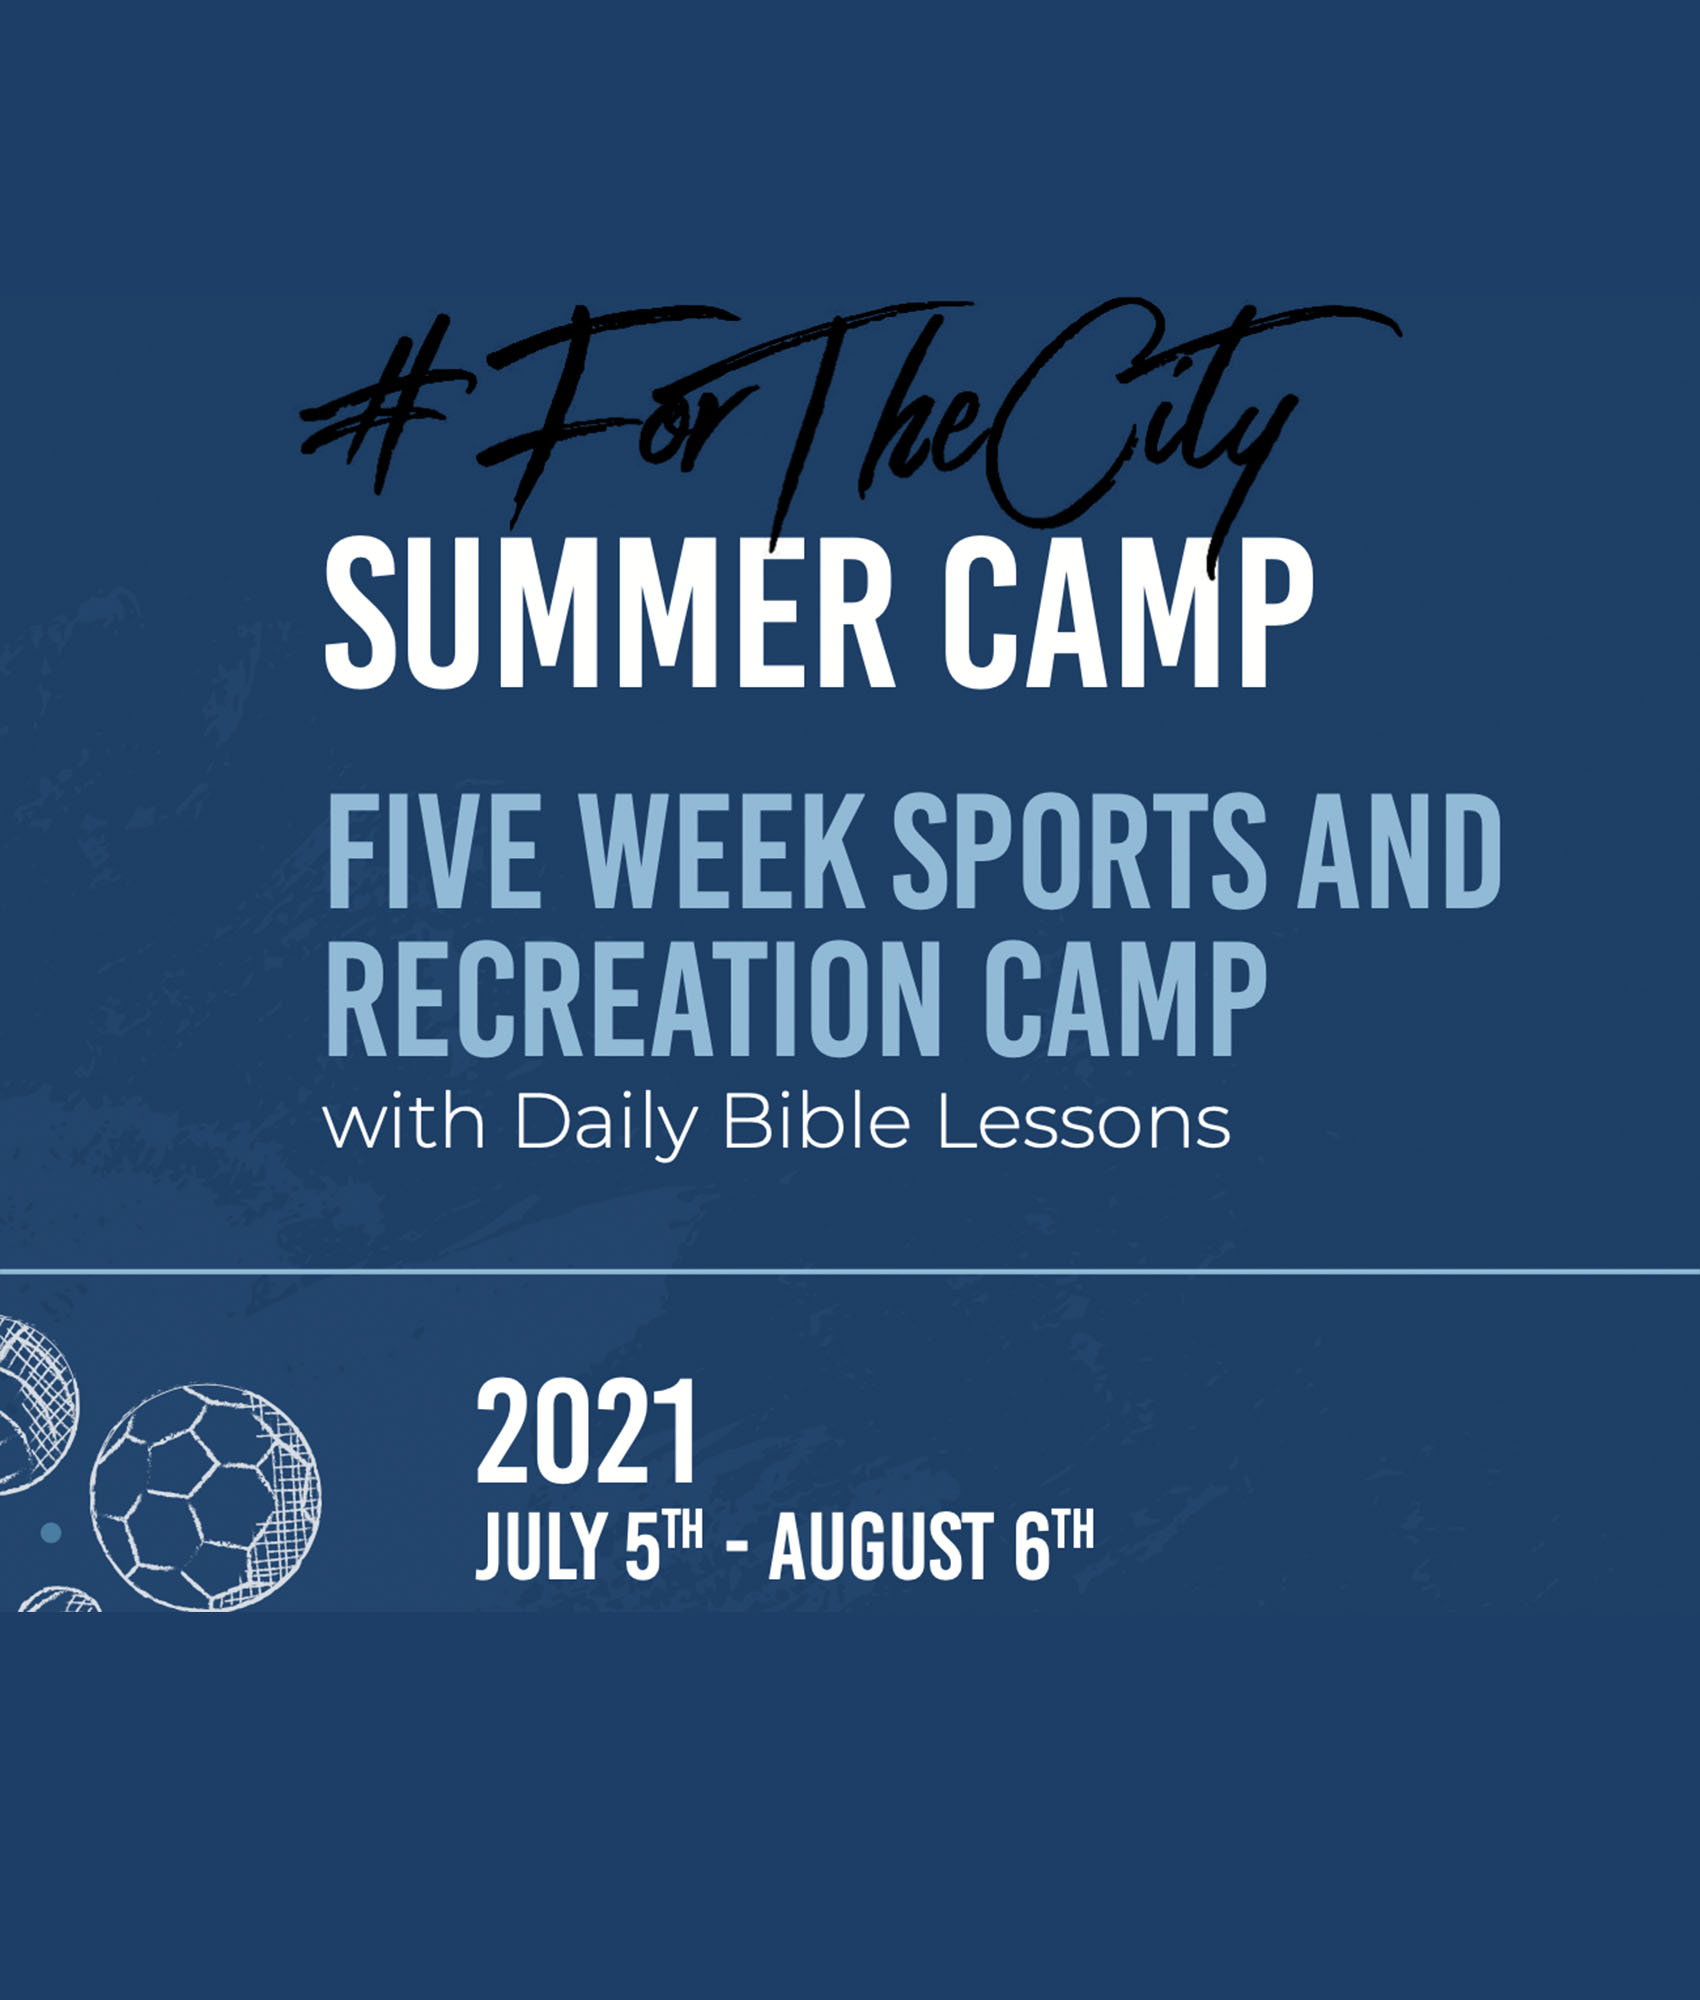 #ForTheCity Summer Camp